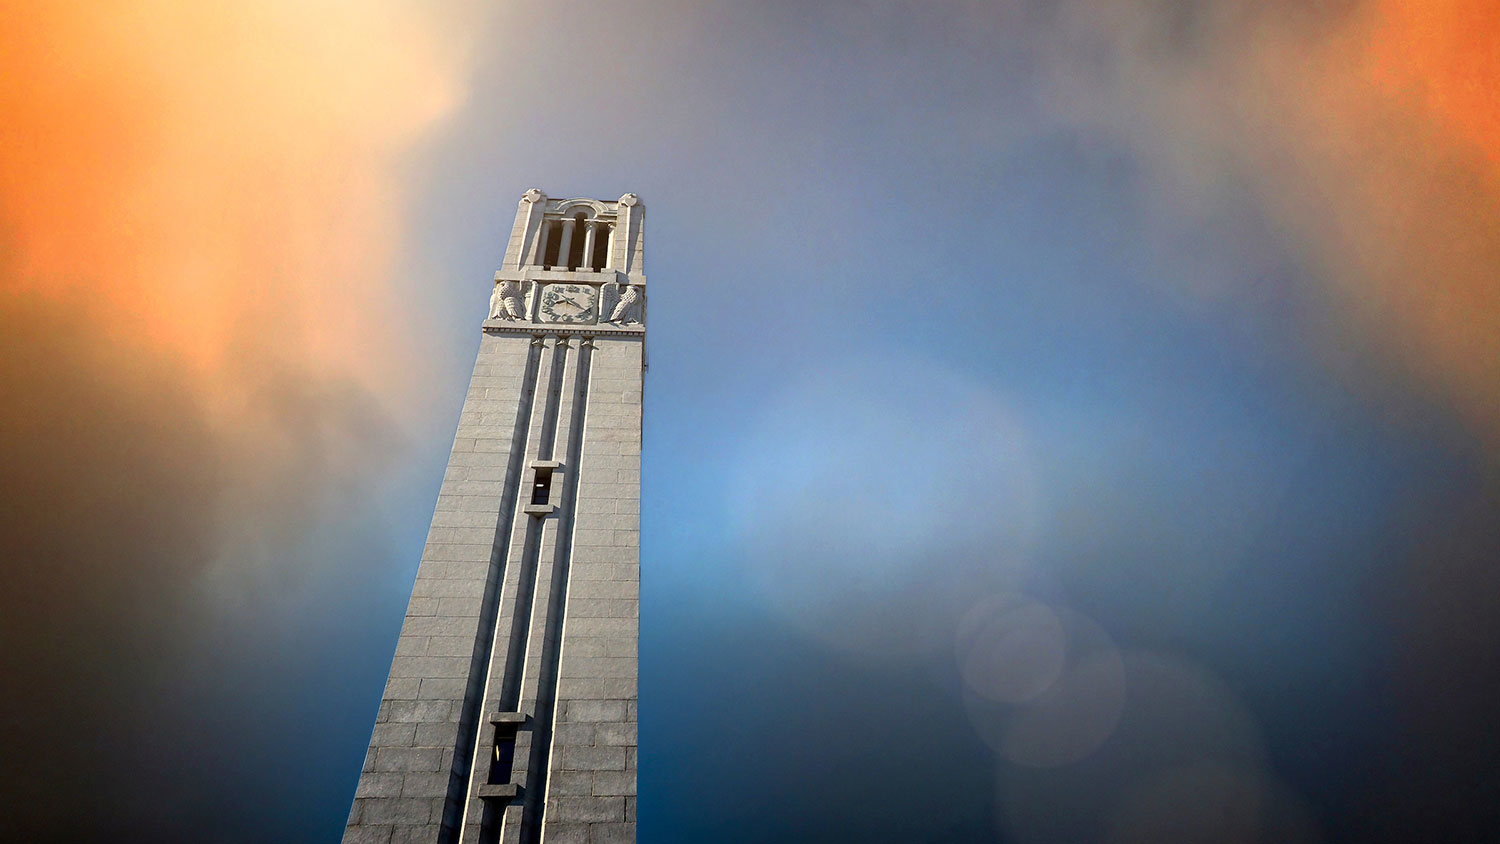 NC State Belltower with orange sky